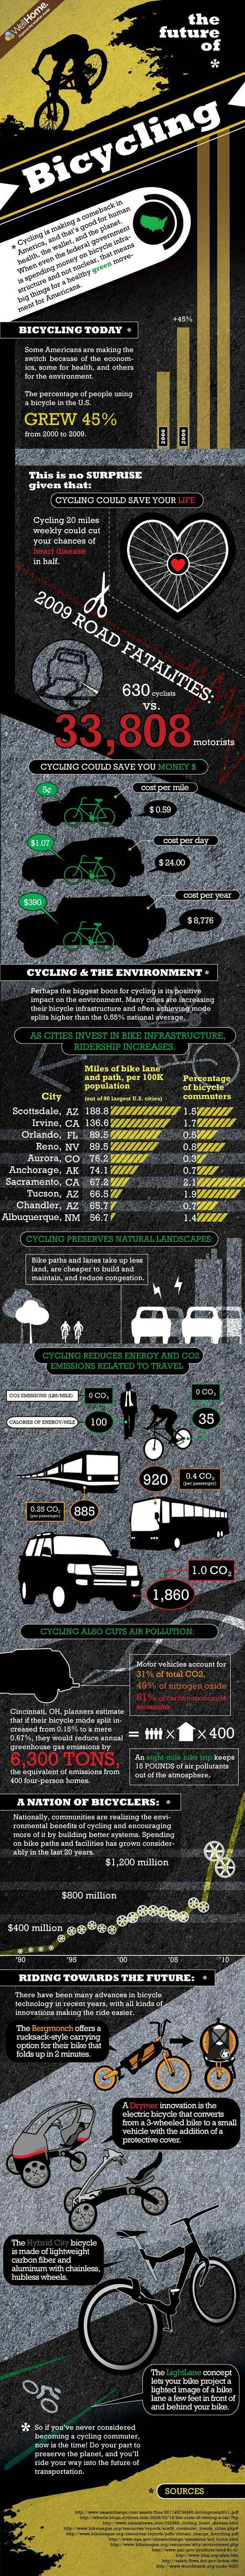 infographic on facts about bicycling's present and future